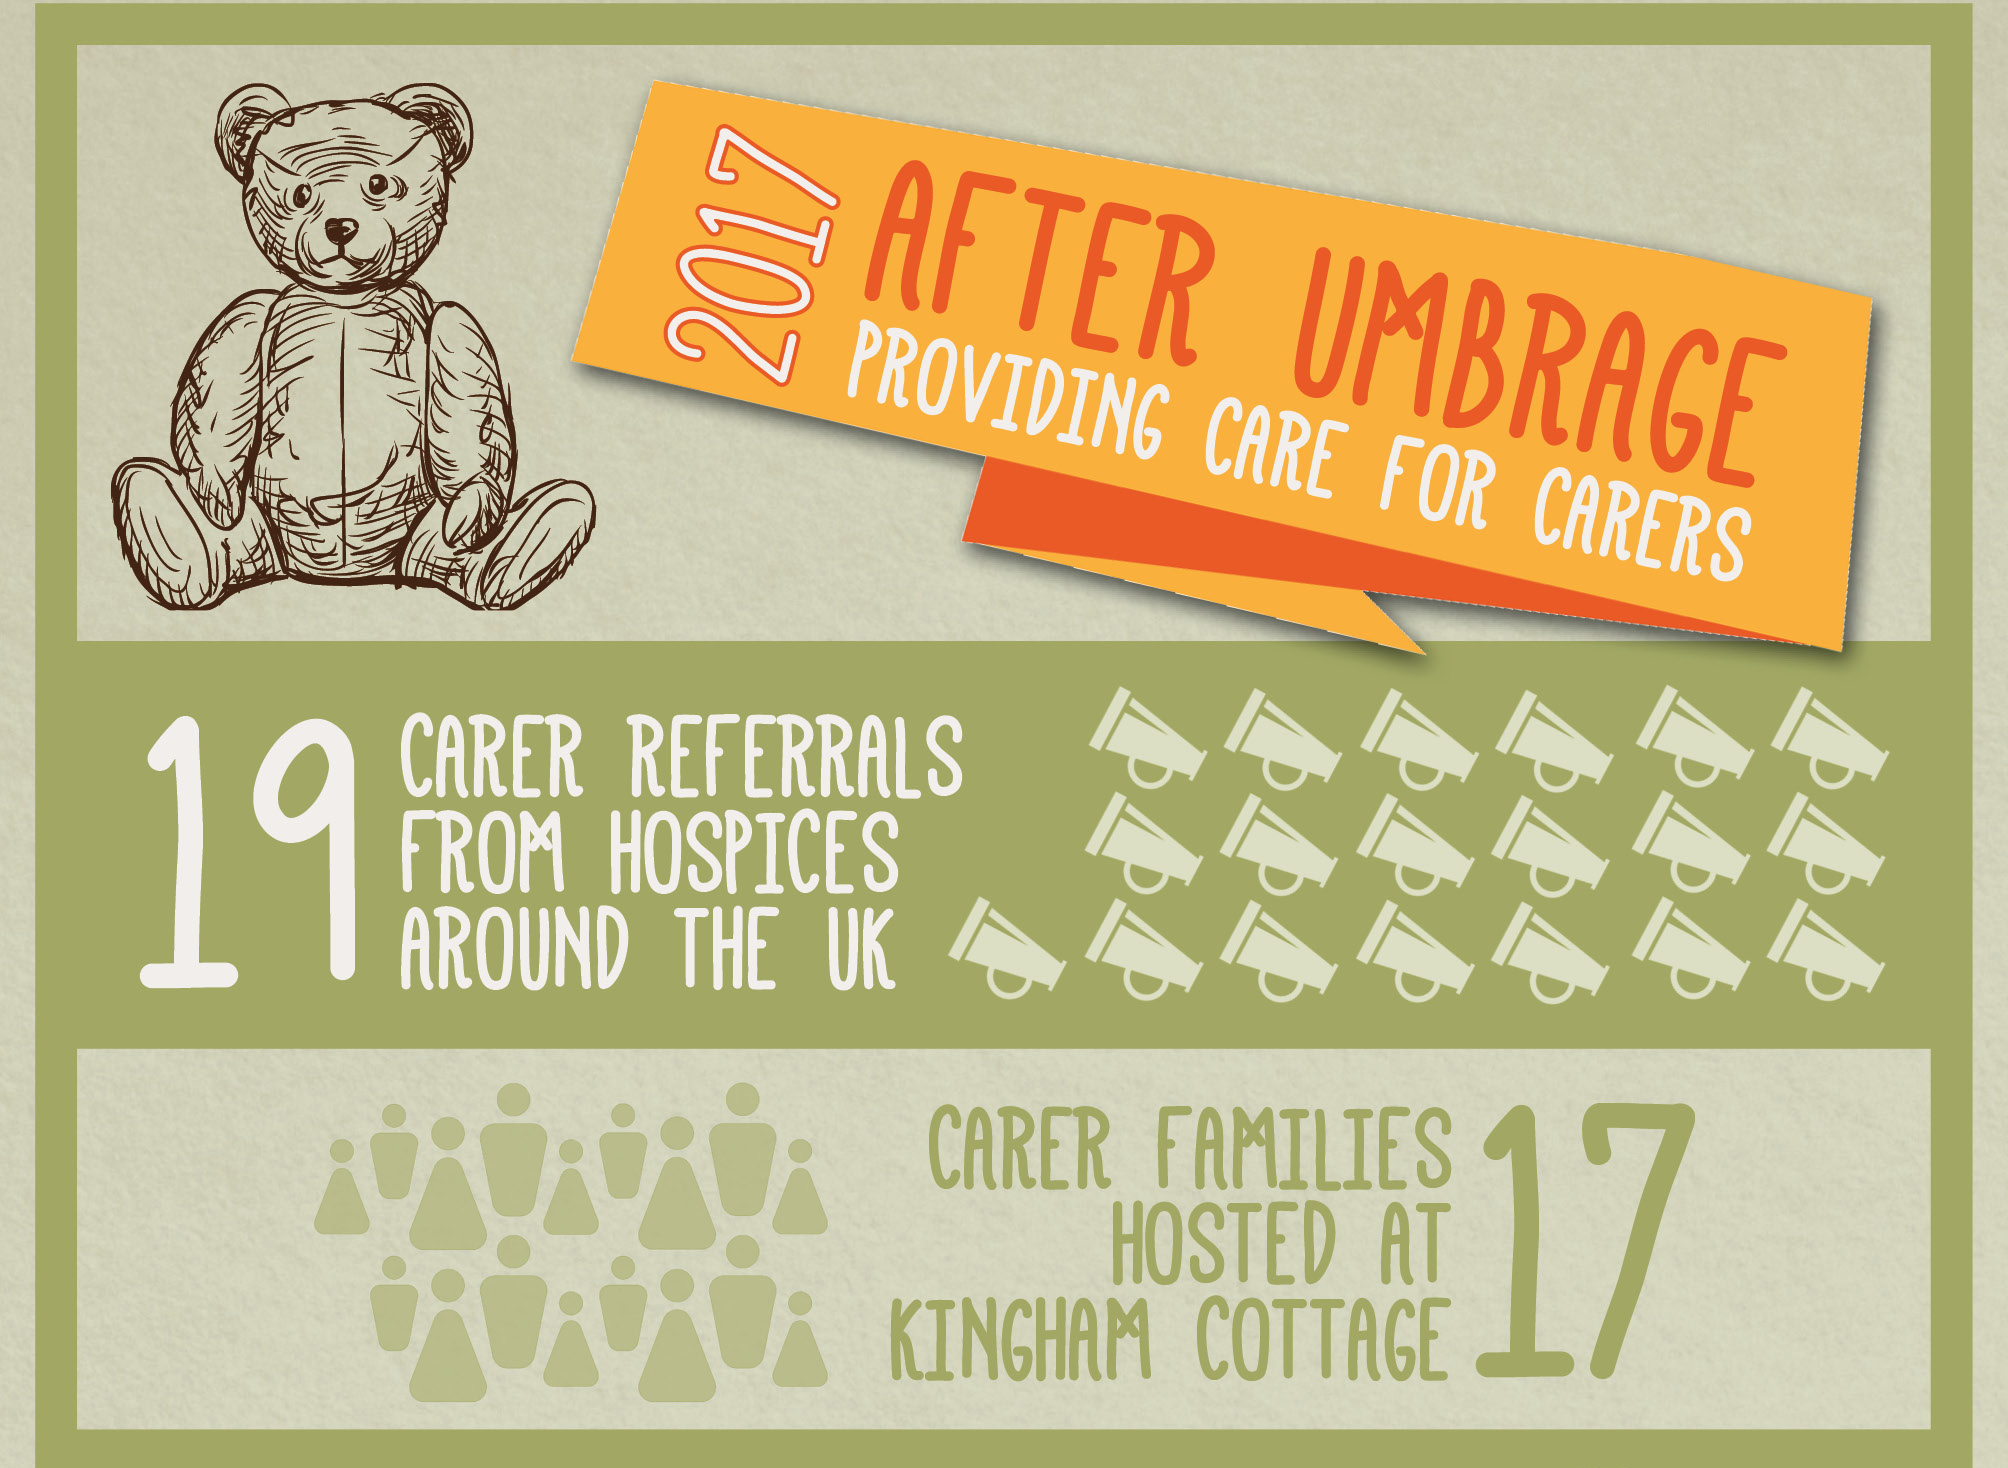 After Umbrage's Year In Numbers: Providing Care for Carers in 2017